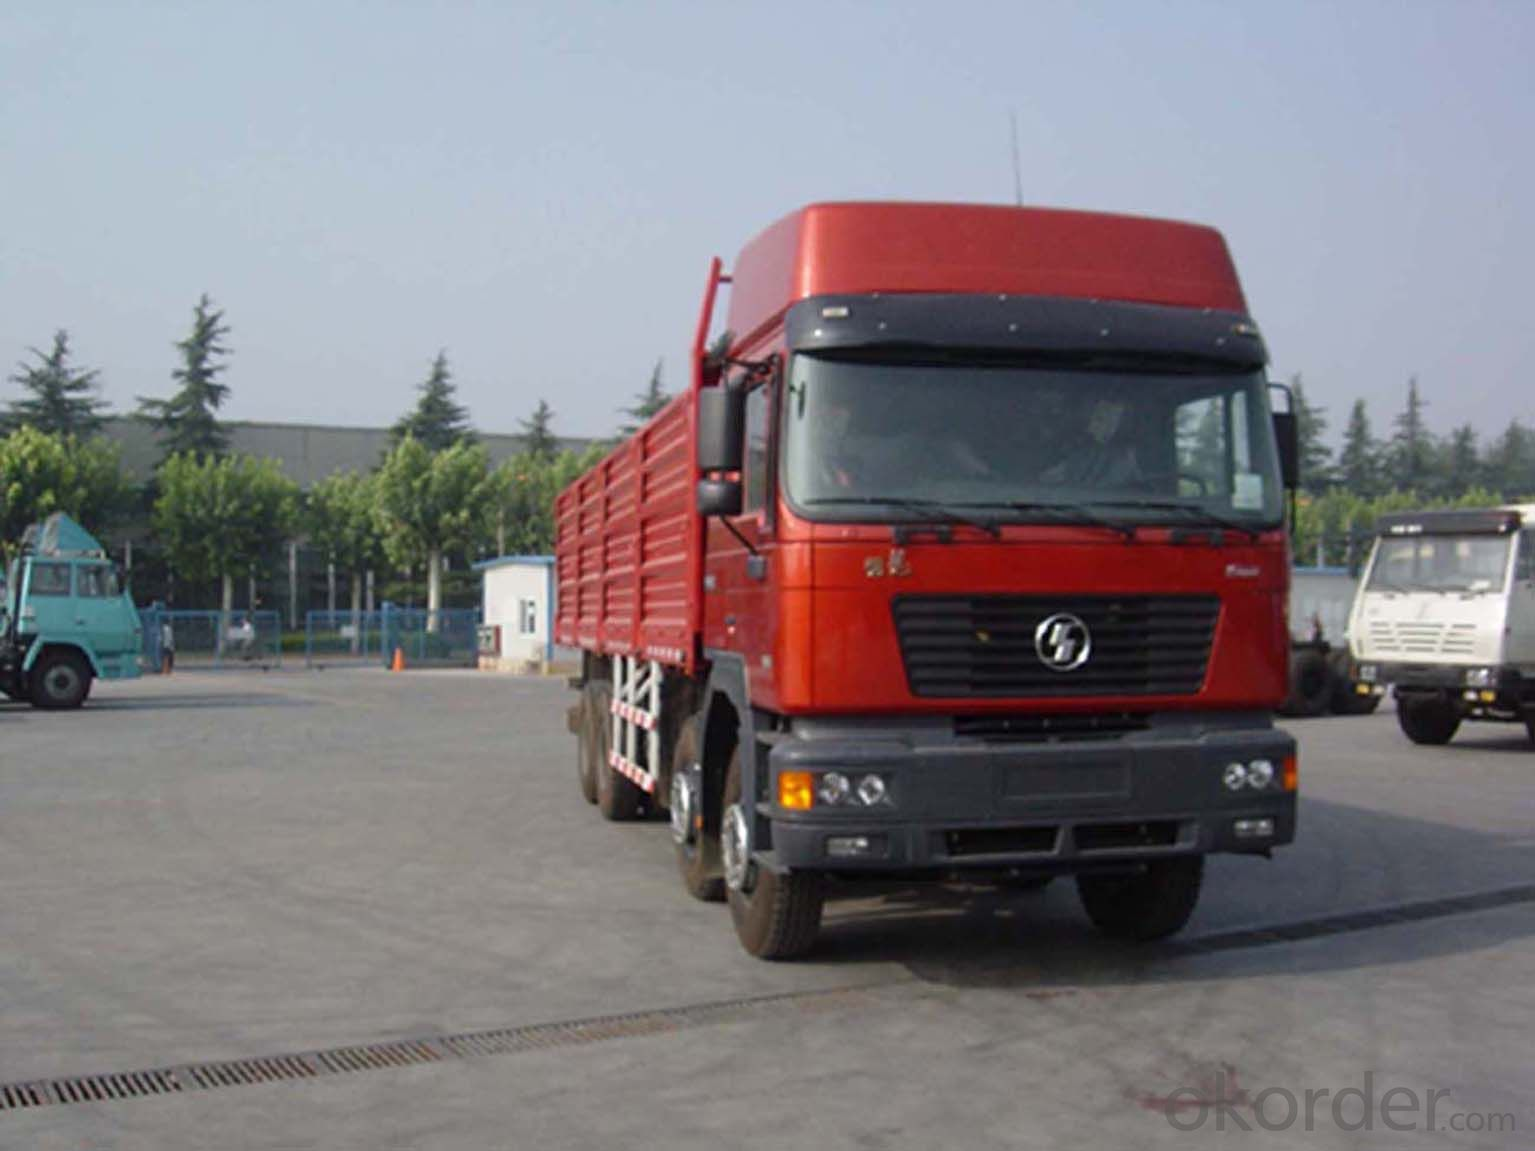 SHACMAN F2000 8X4 336HP 30 TONS LORRY TRUCK(CARGO TRUCK)